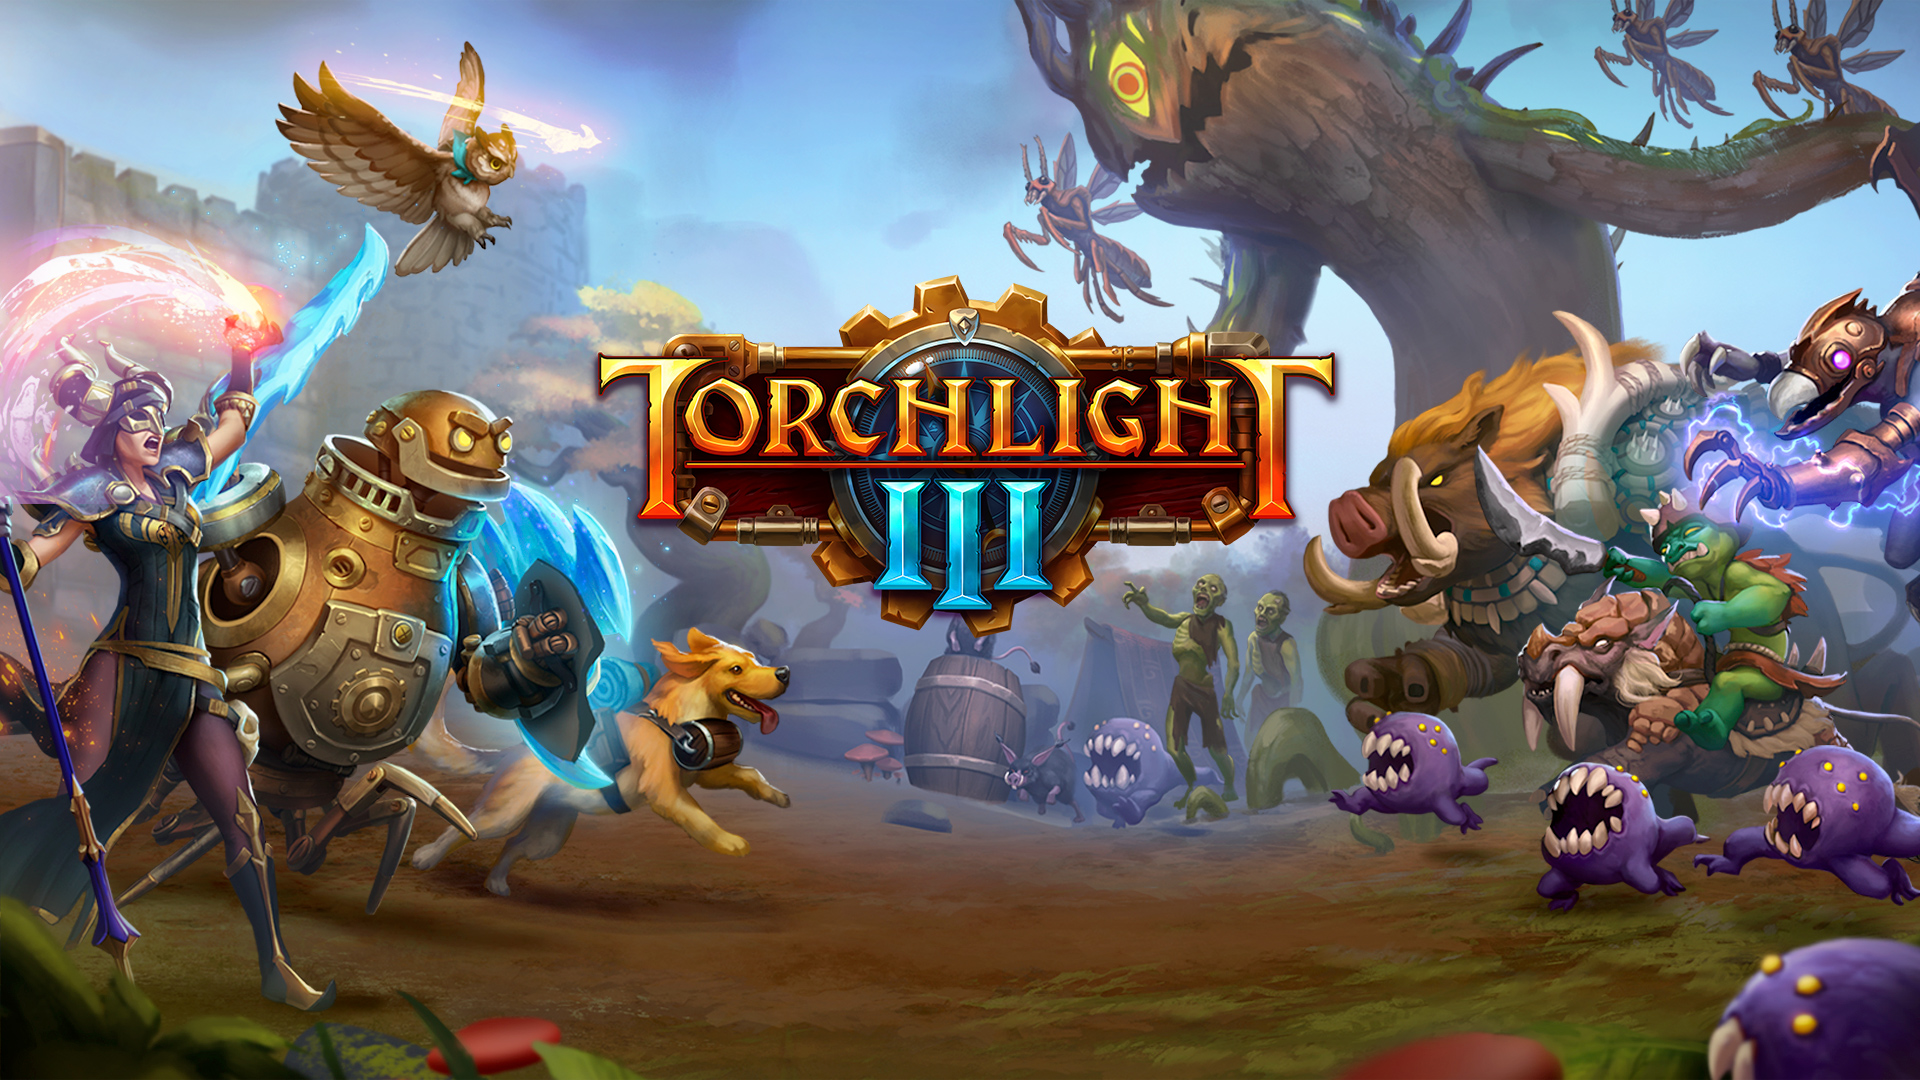 Torchlight 3 announced